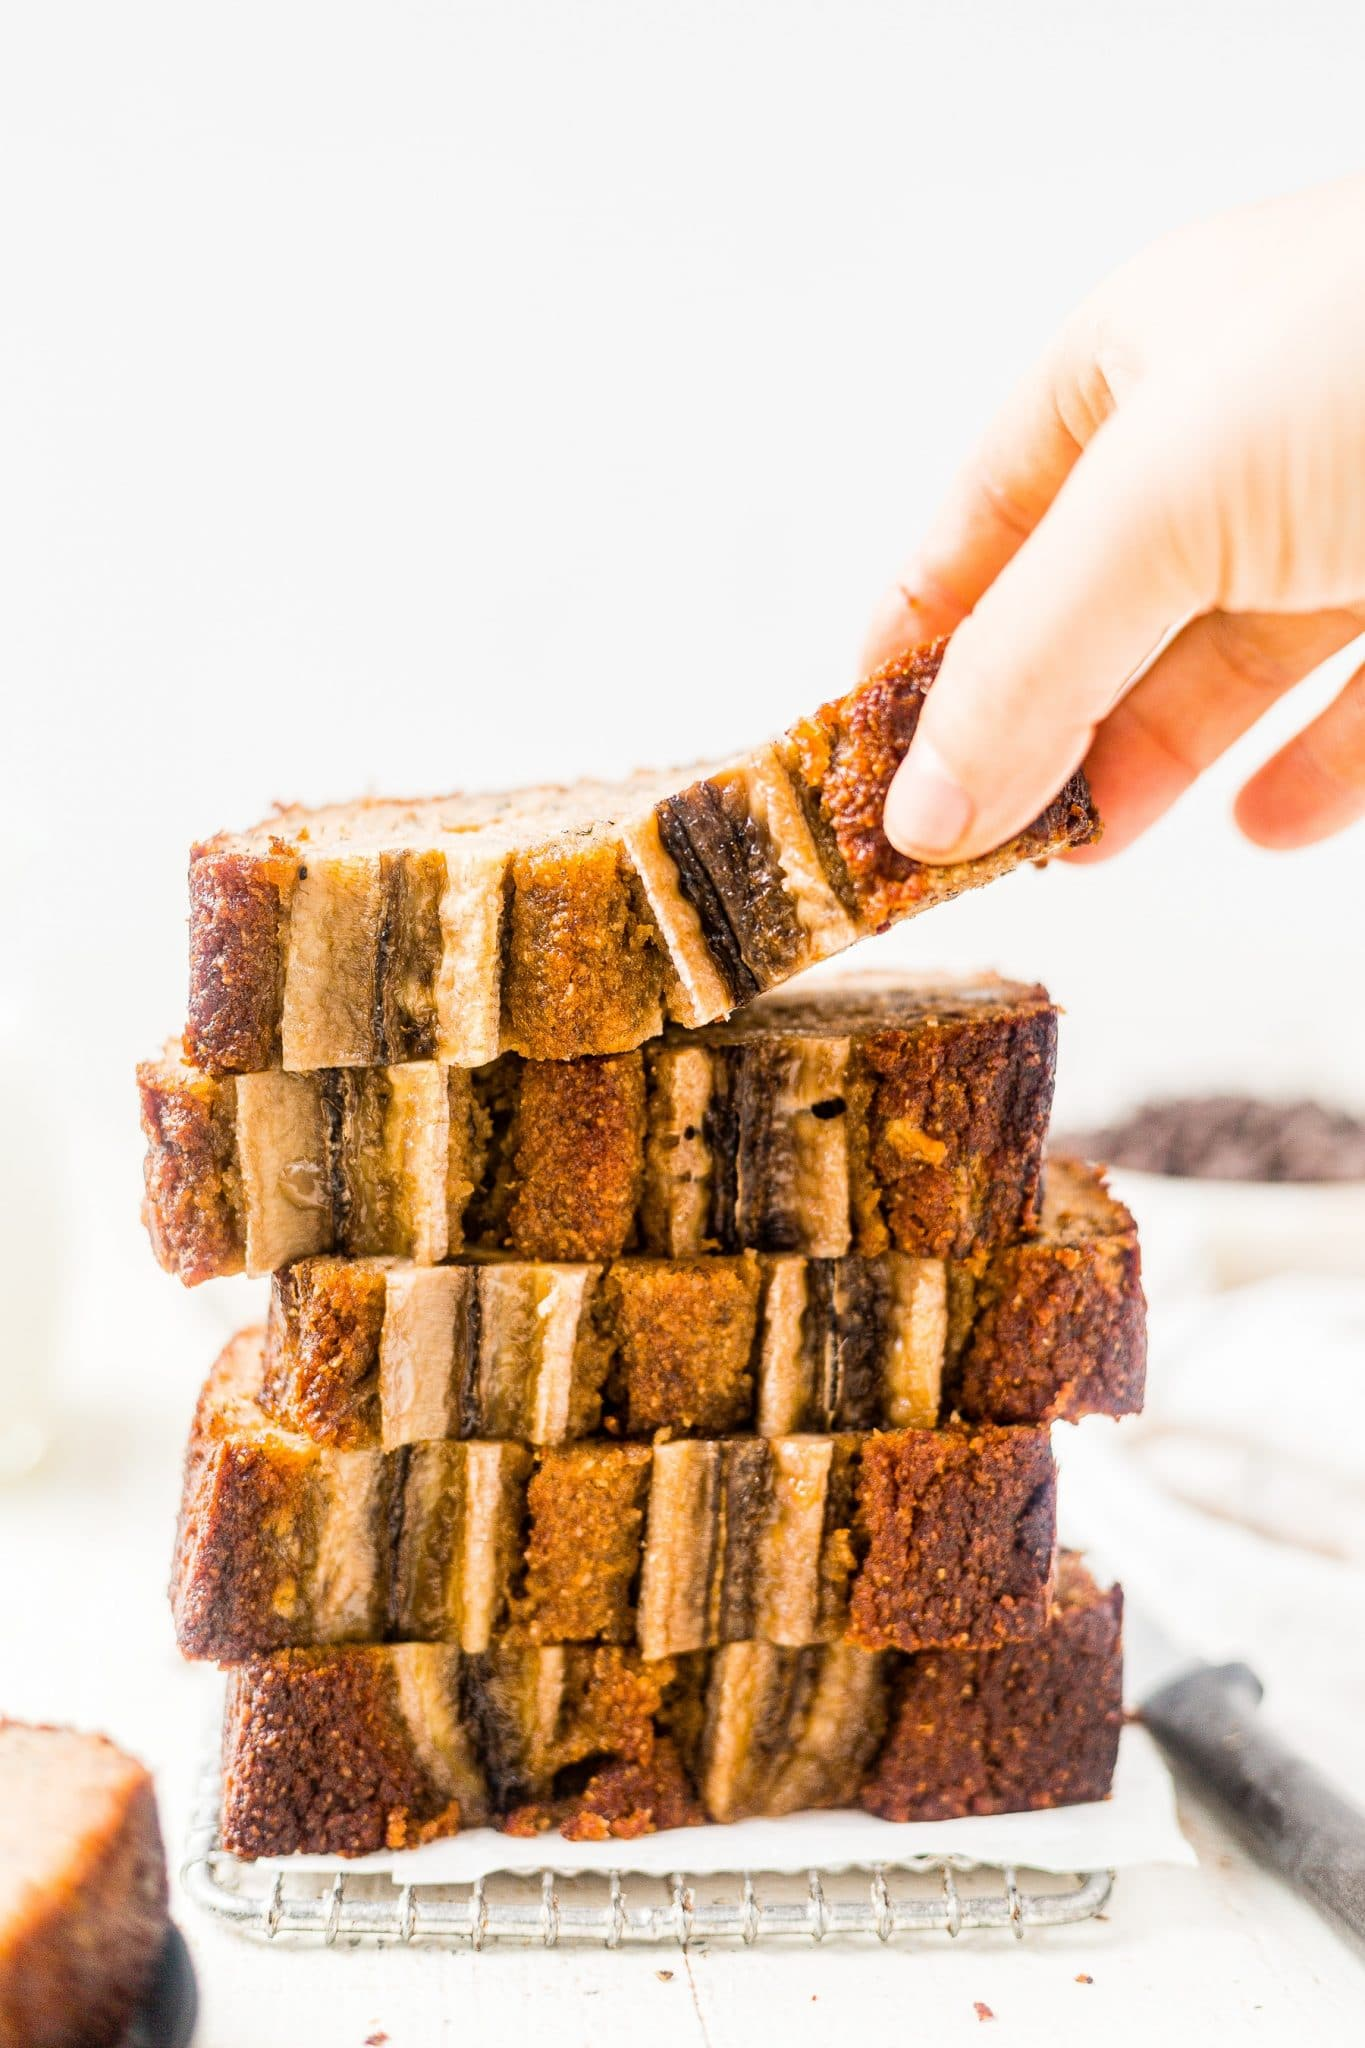 5 slices of banana bread made with almond flour stacked on top of each other with a hand reaching for the top one